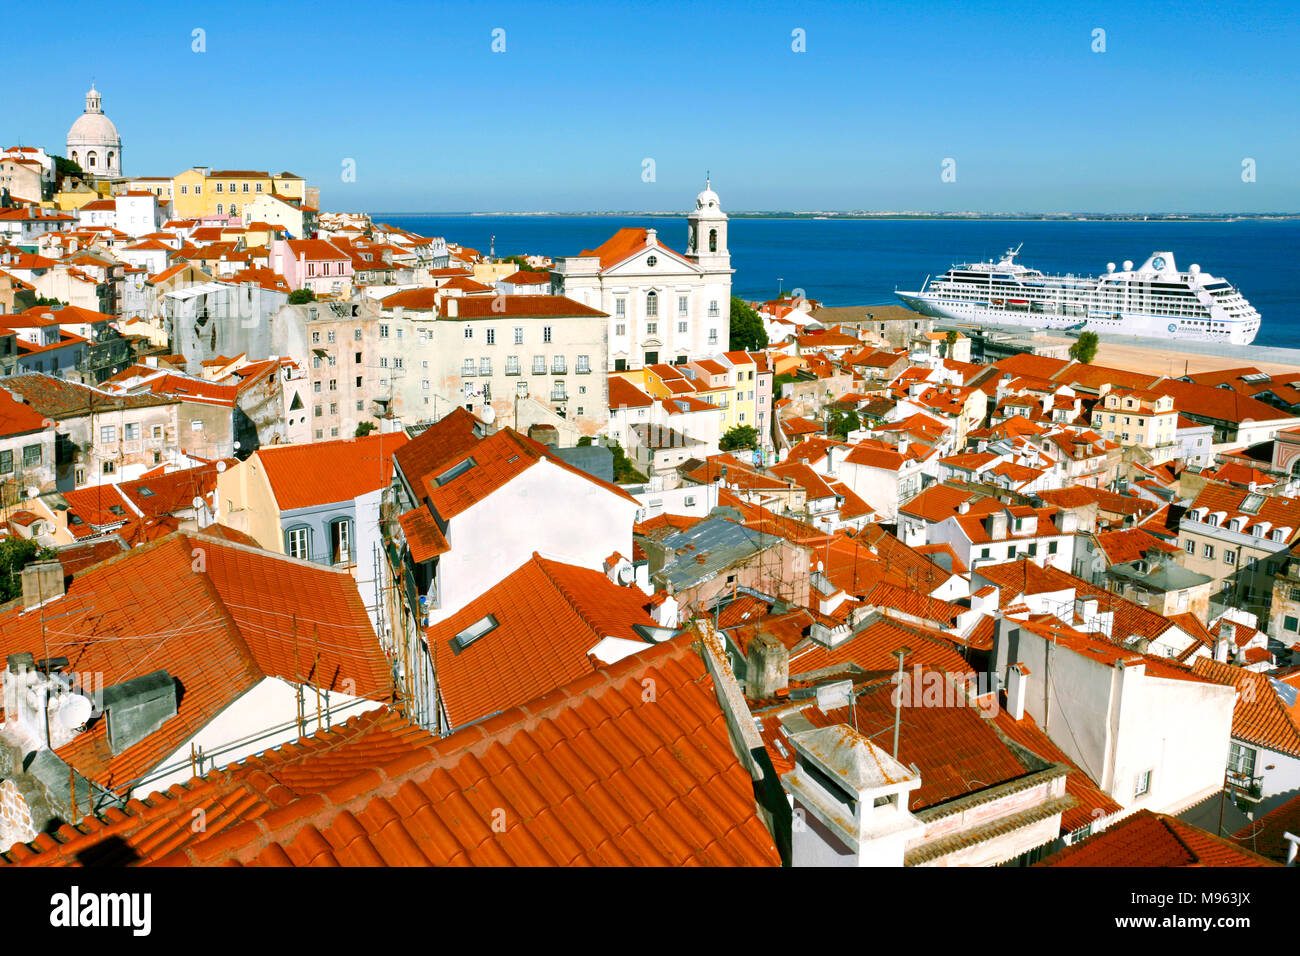 Panorama of the old Alfama District panorama and a Cruise ship, Lisbon, Portugal - Stock Image